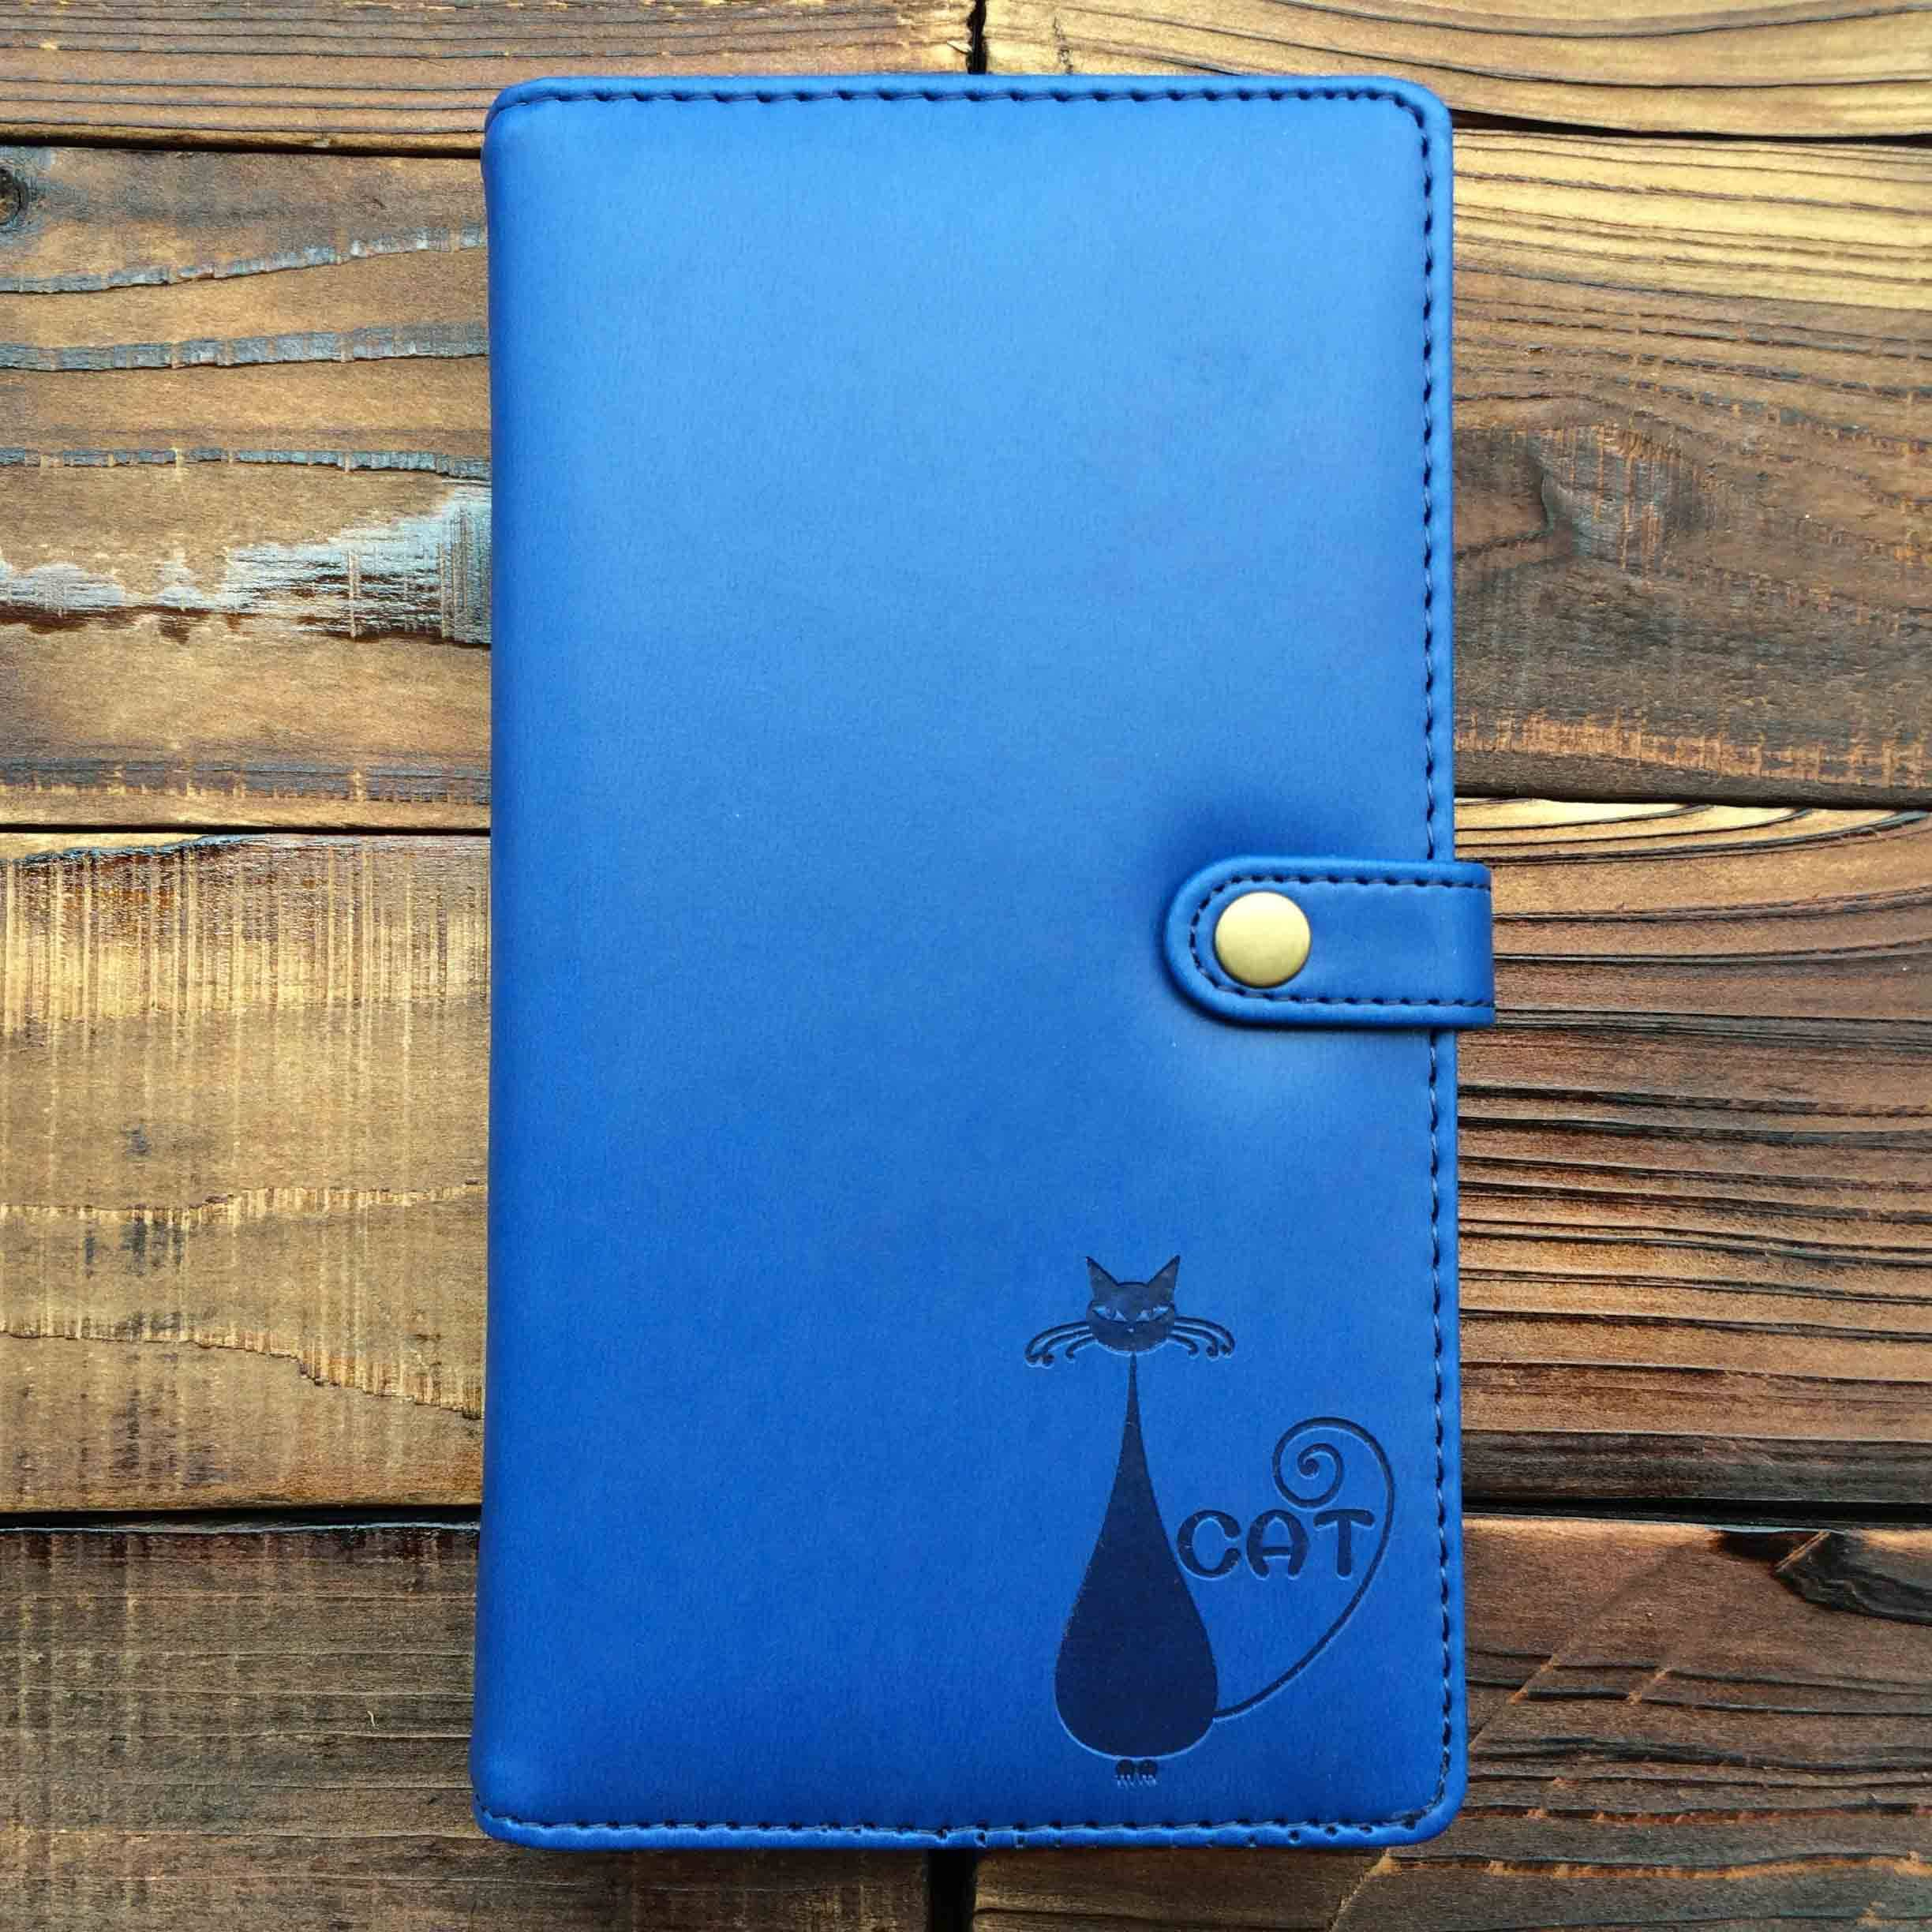 A6 pocket notebooks pu leather cover material blind embossed logo